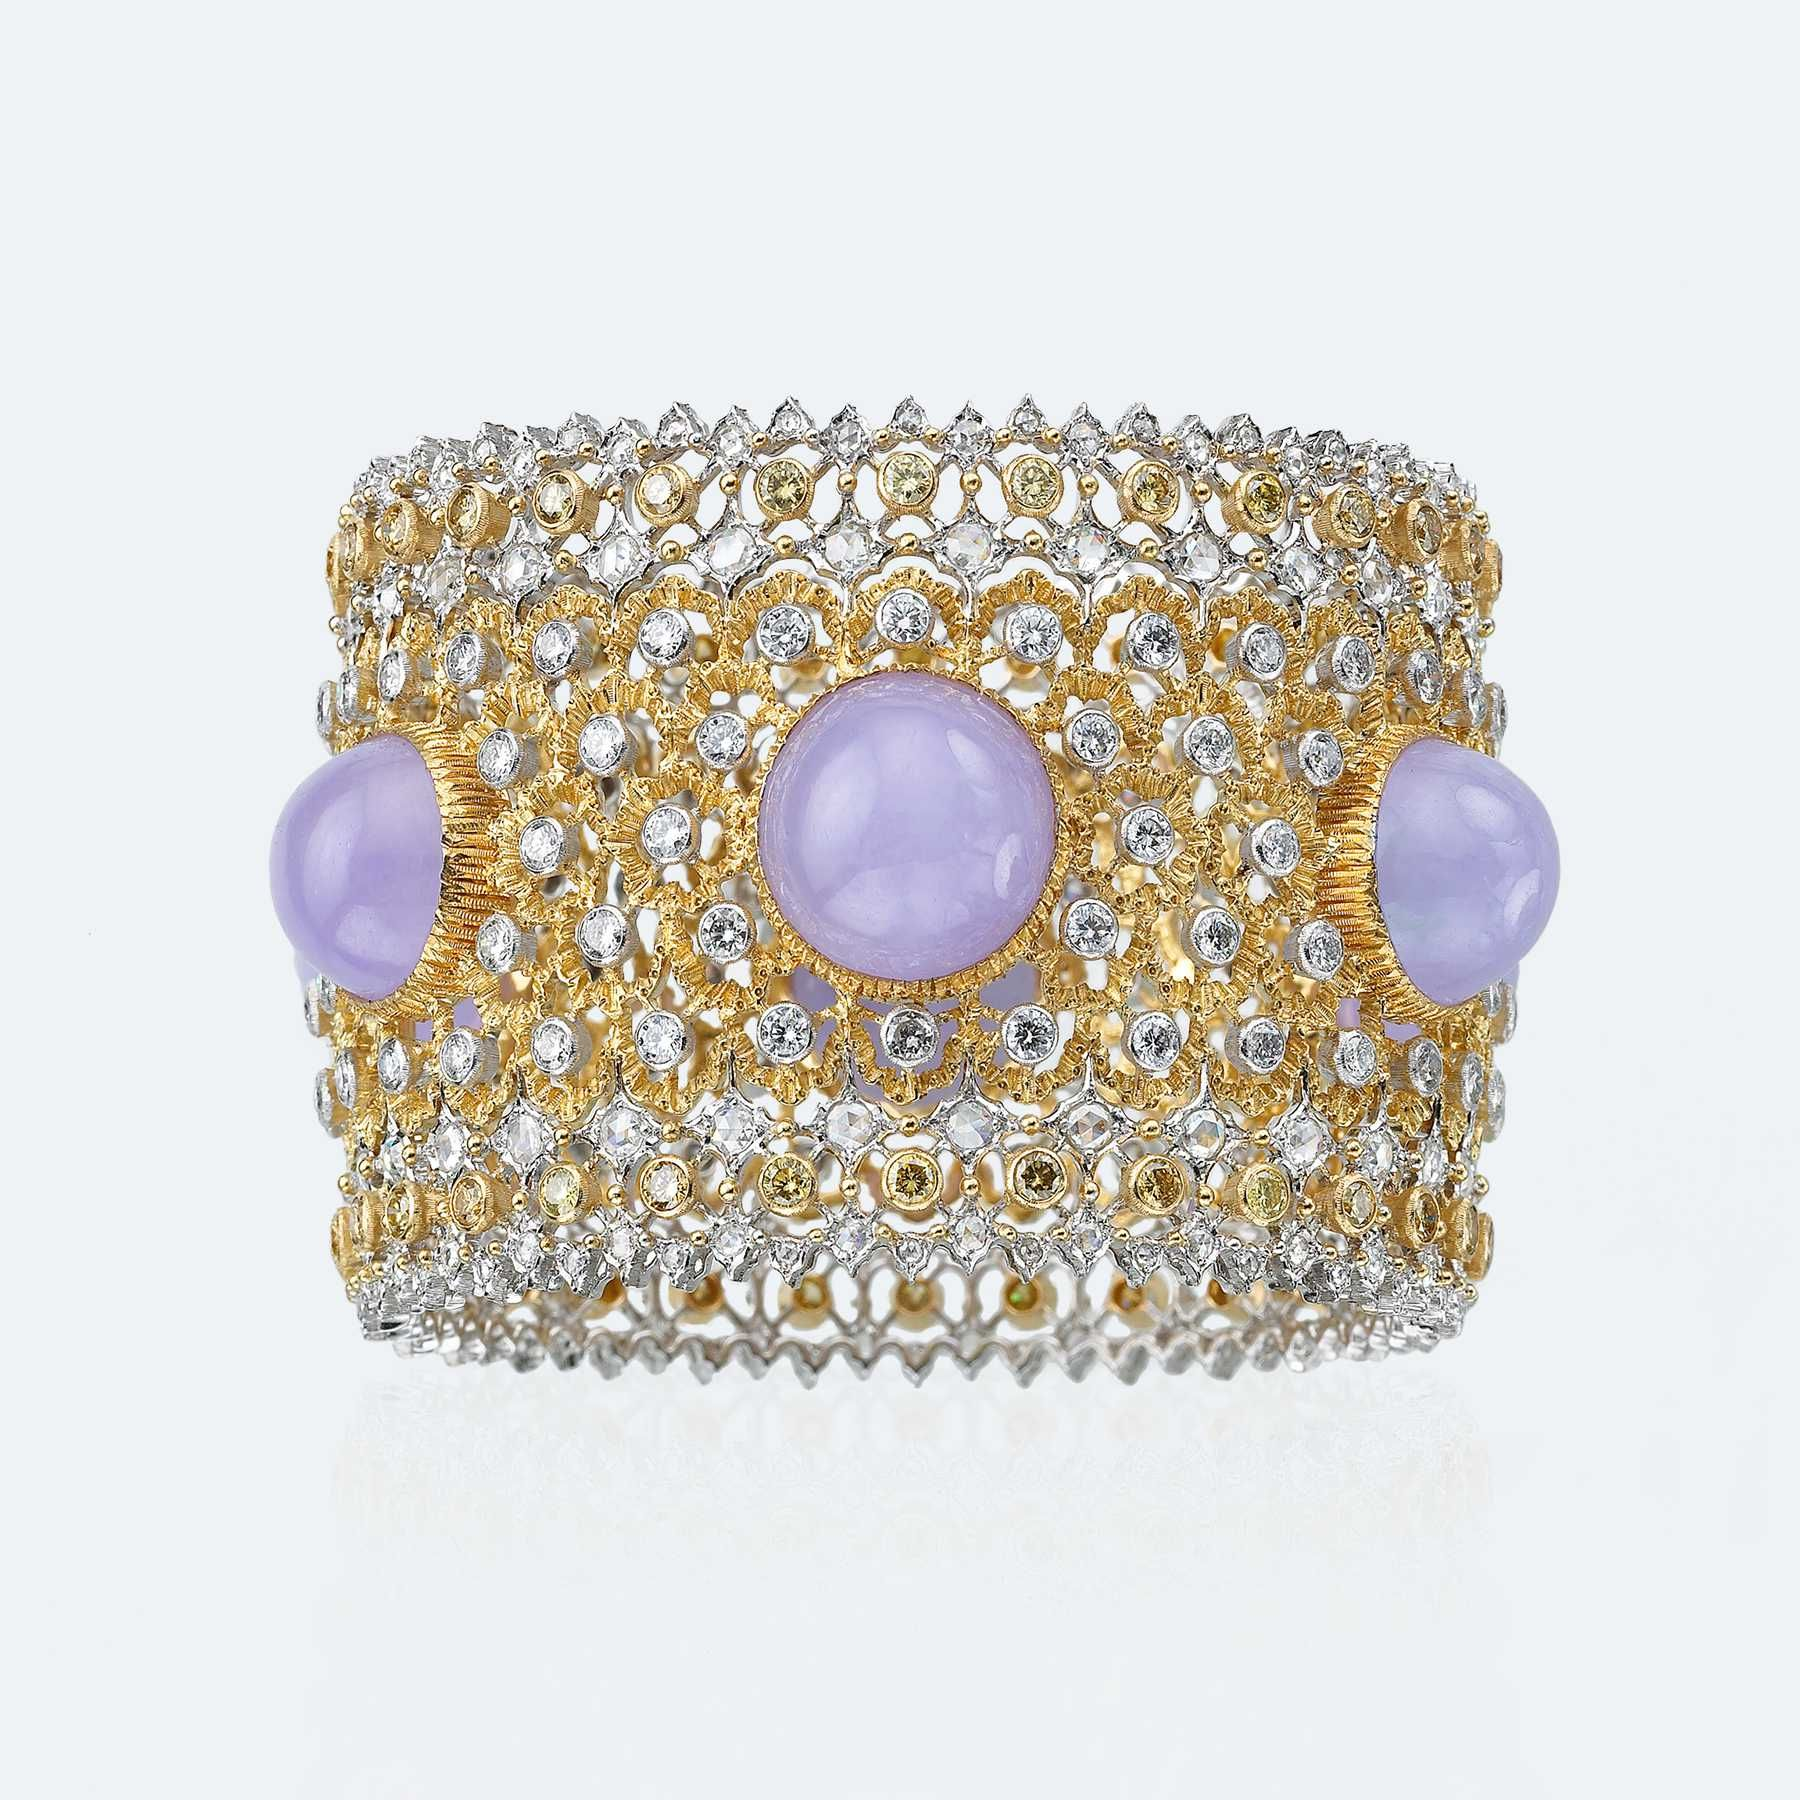 Giada Lavanda Bracelet - Unica | Official Buccellati Website